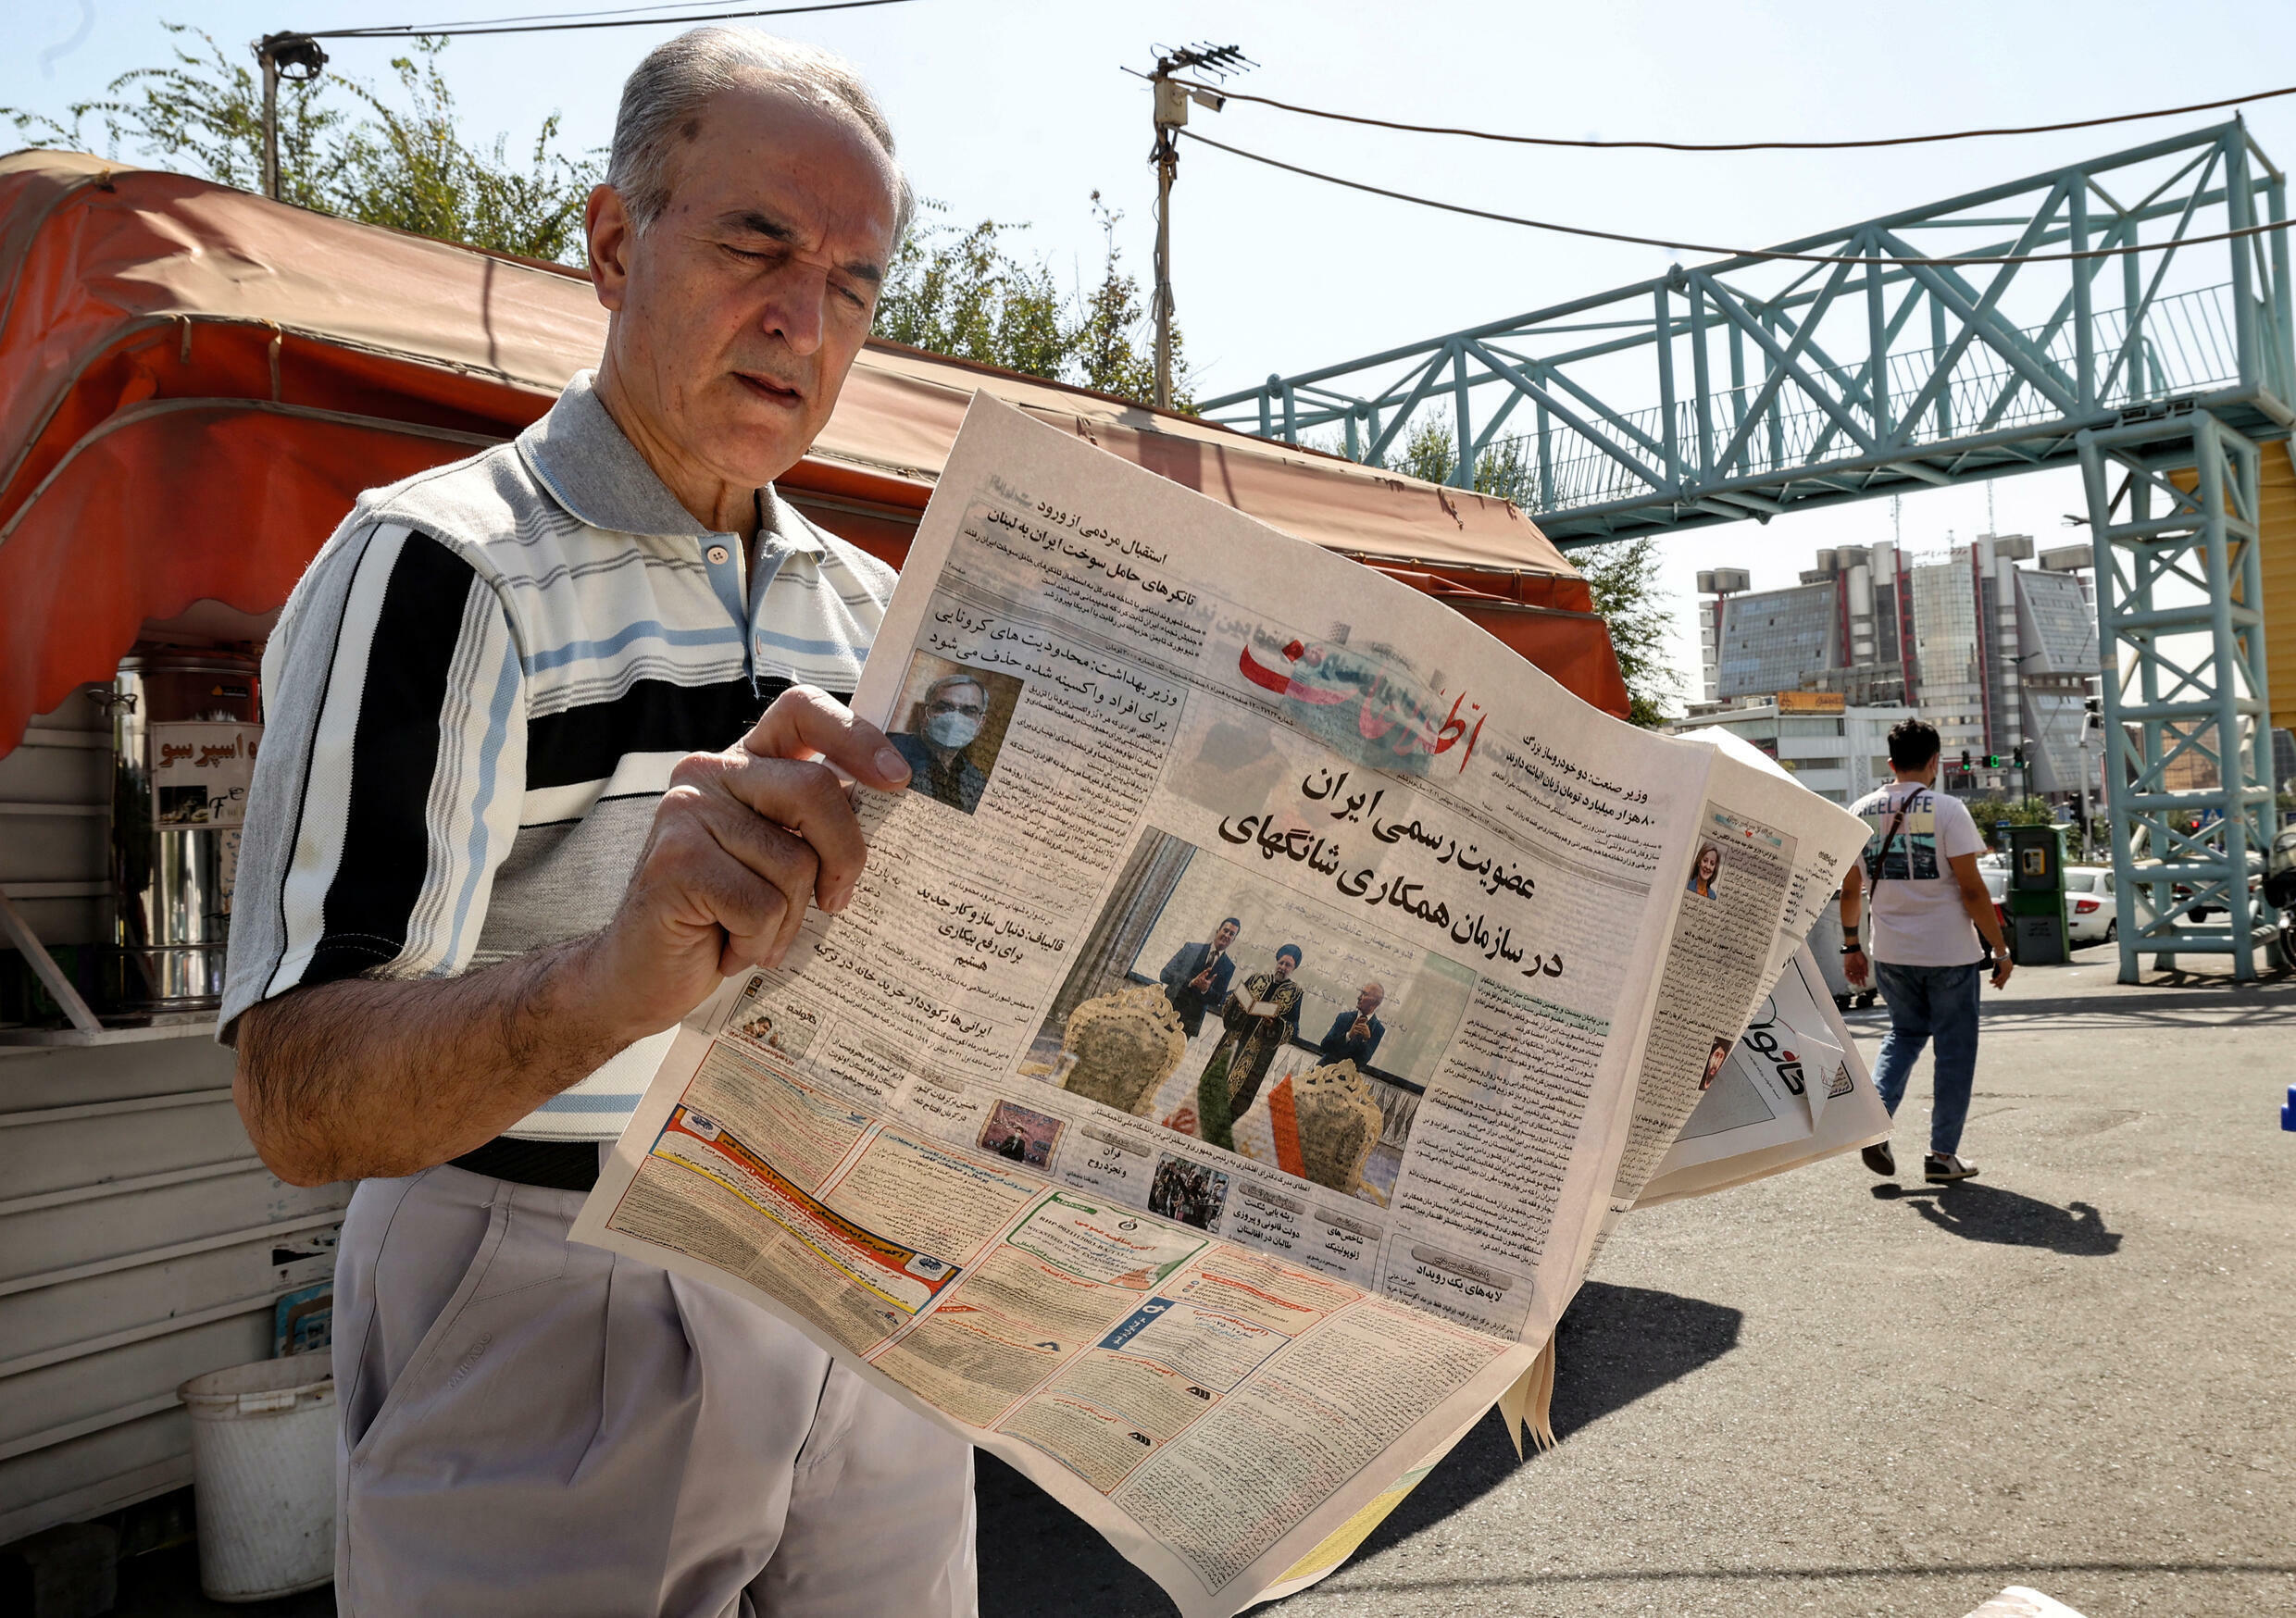 """An Iranian man reads a copy of the daily newspaper """"Etalaat"""" headlined, """"Iran is a new member of the Shanghai Cooperation Organisation"""", at a kiosk in Tehran on September 18, 2021"""